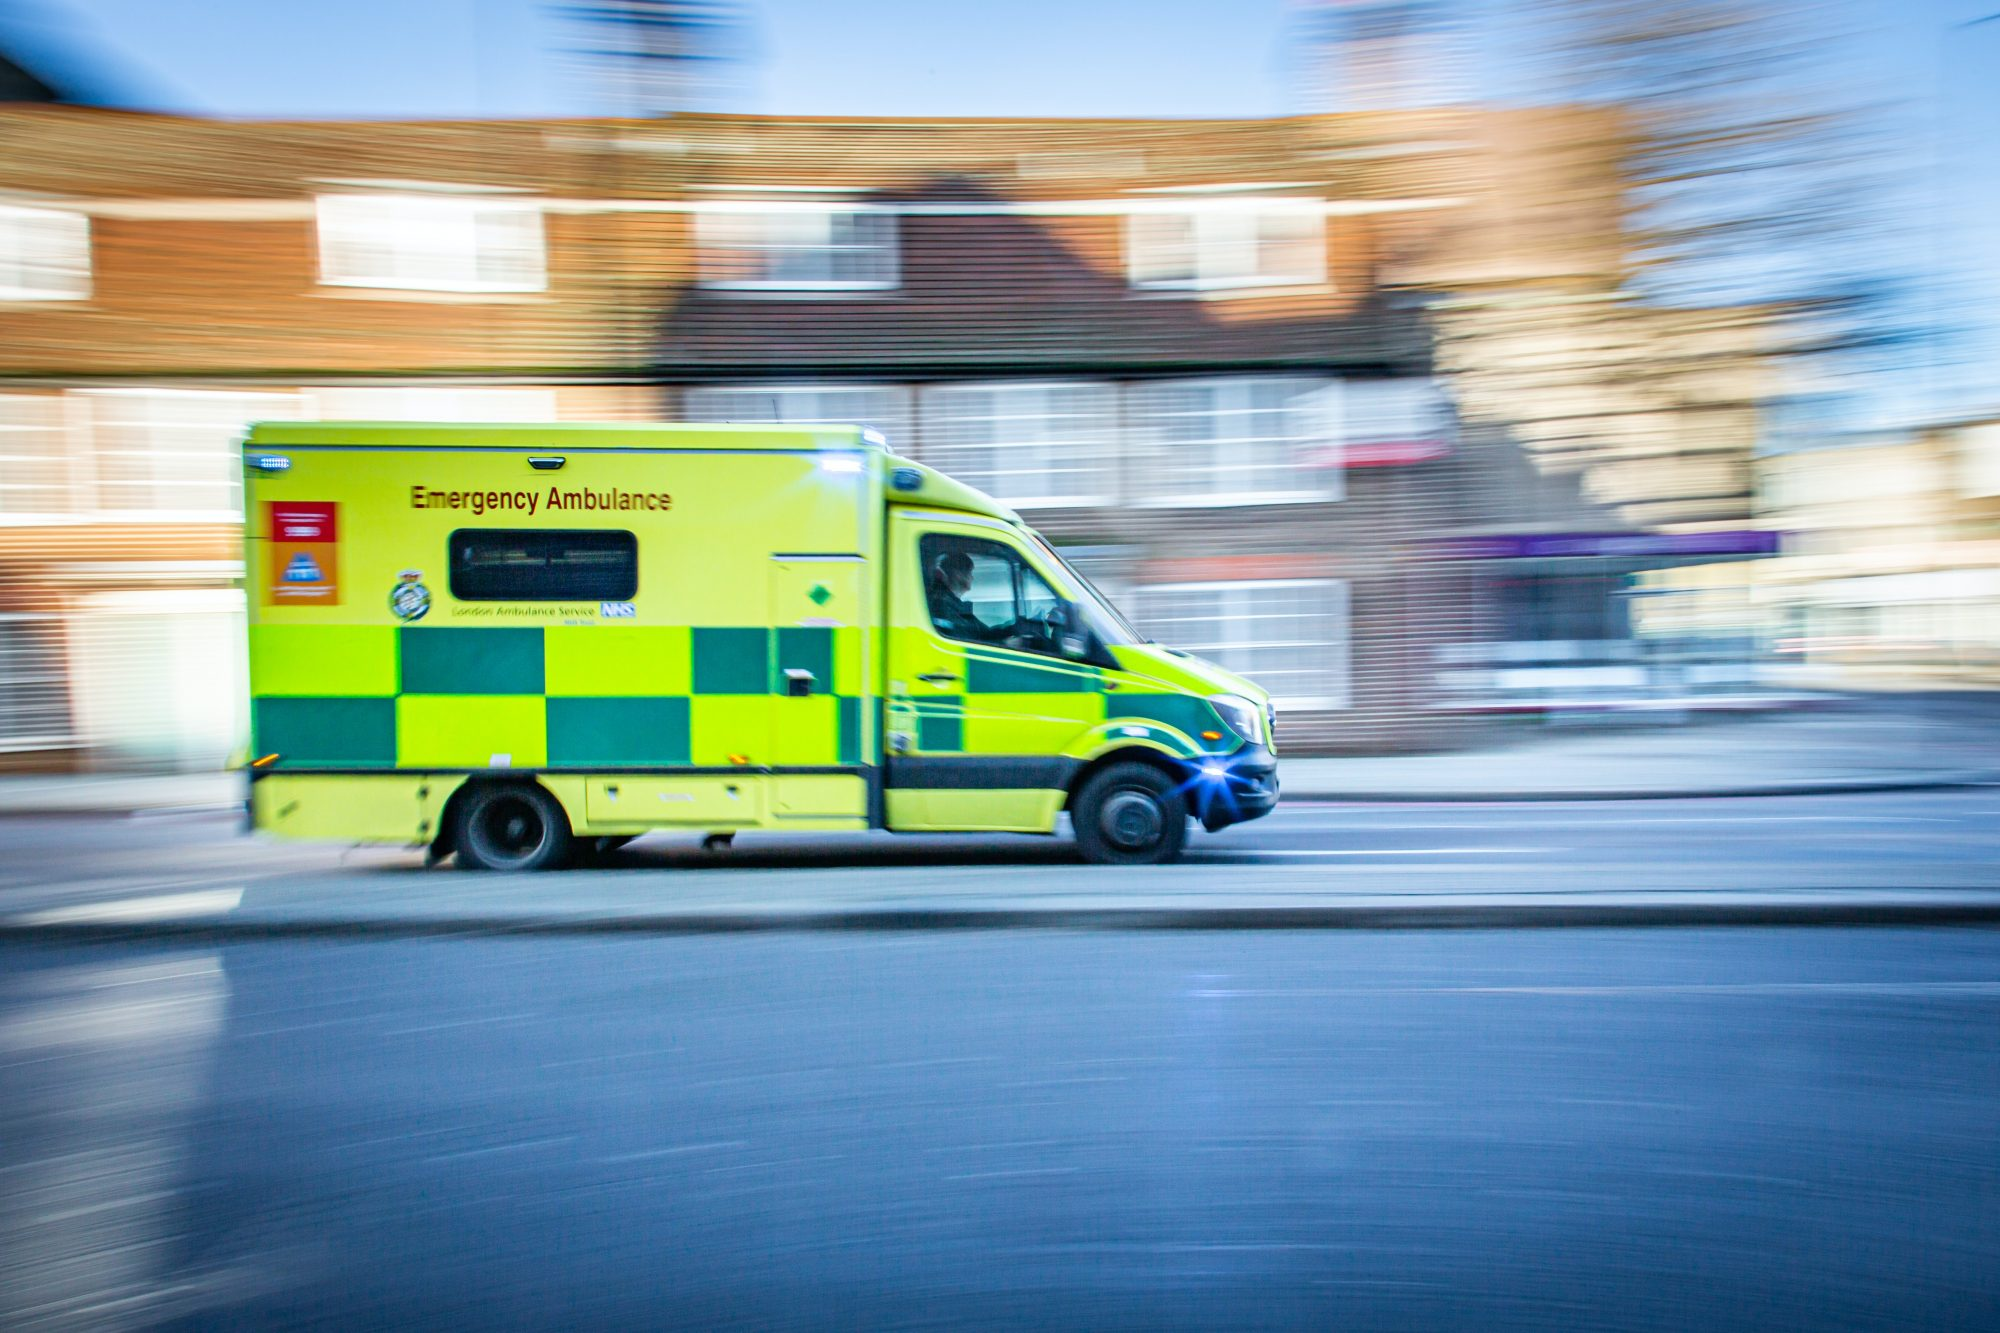 An ambulance driving down a residential street